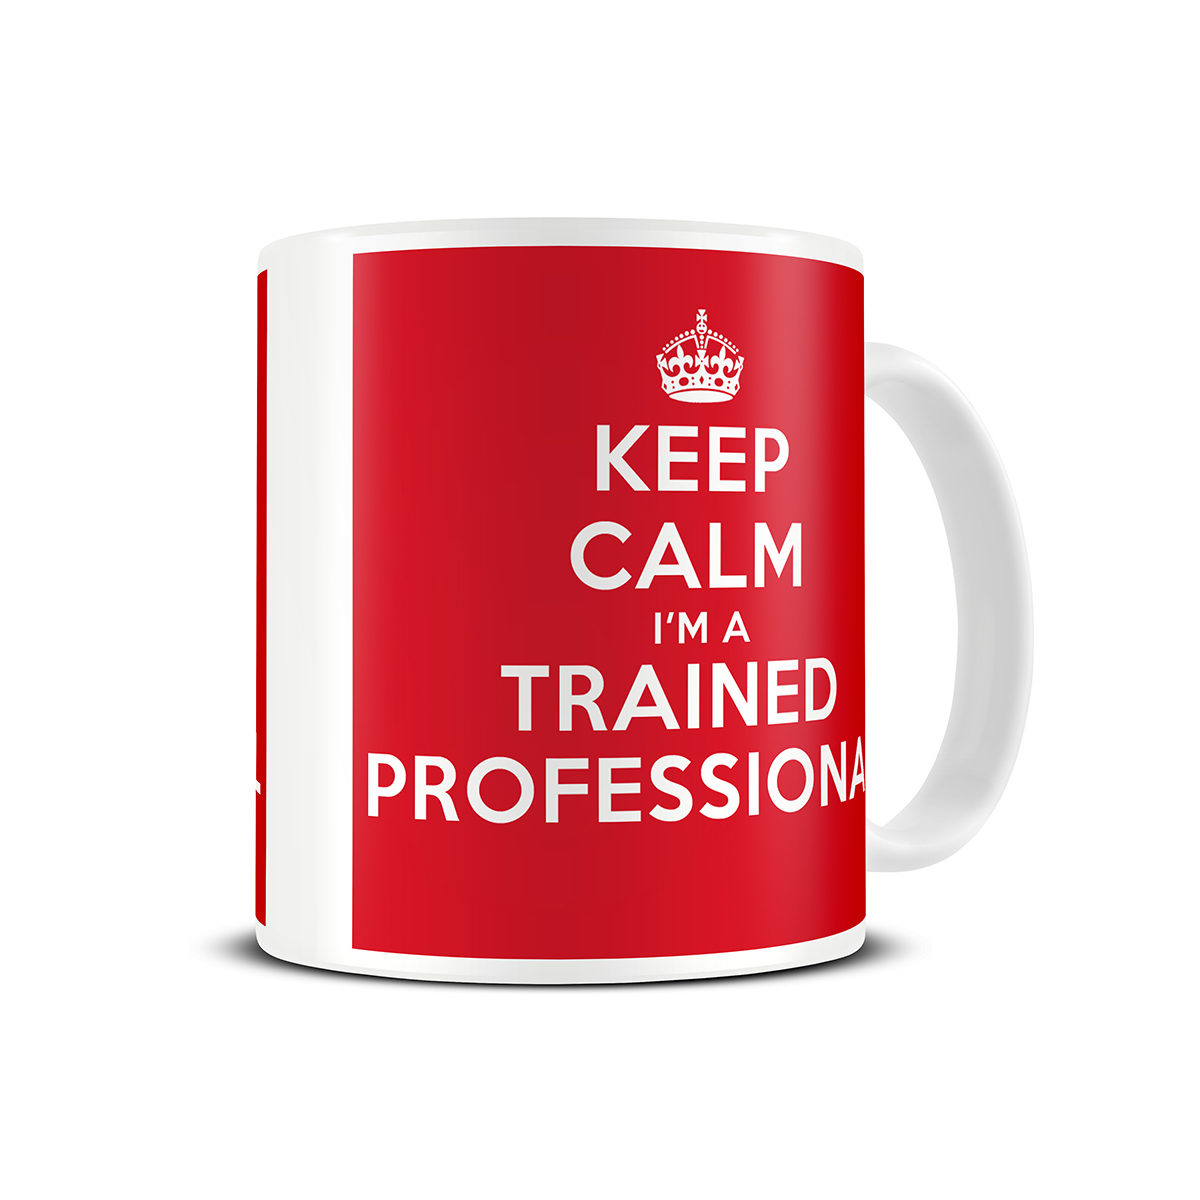 keep-calm-trained-professional-gift-mug